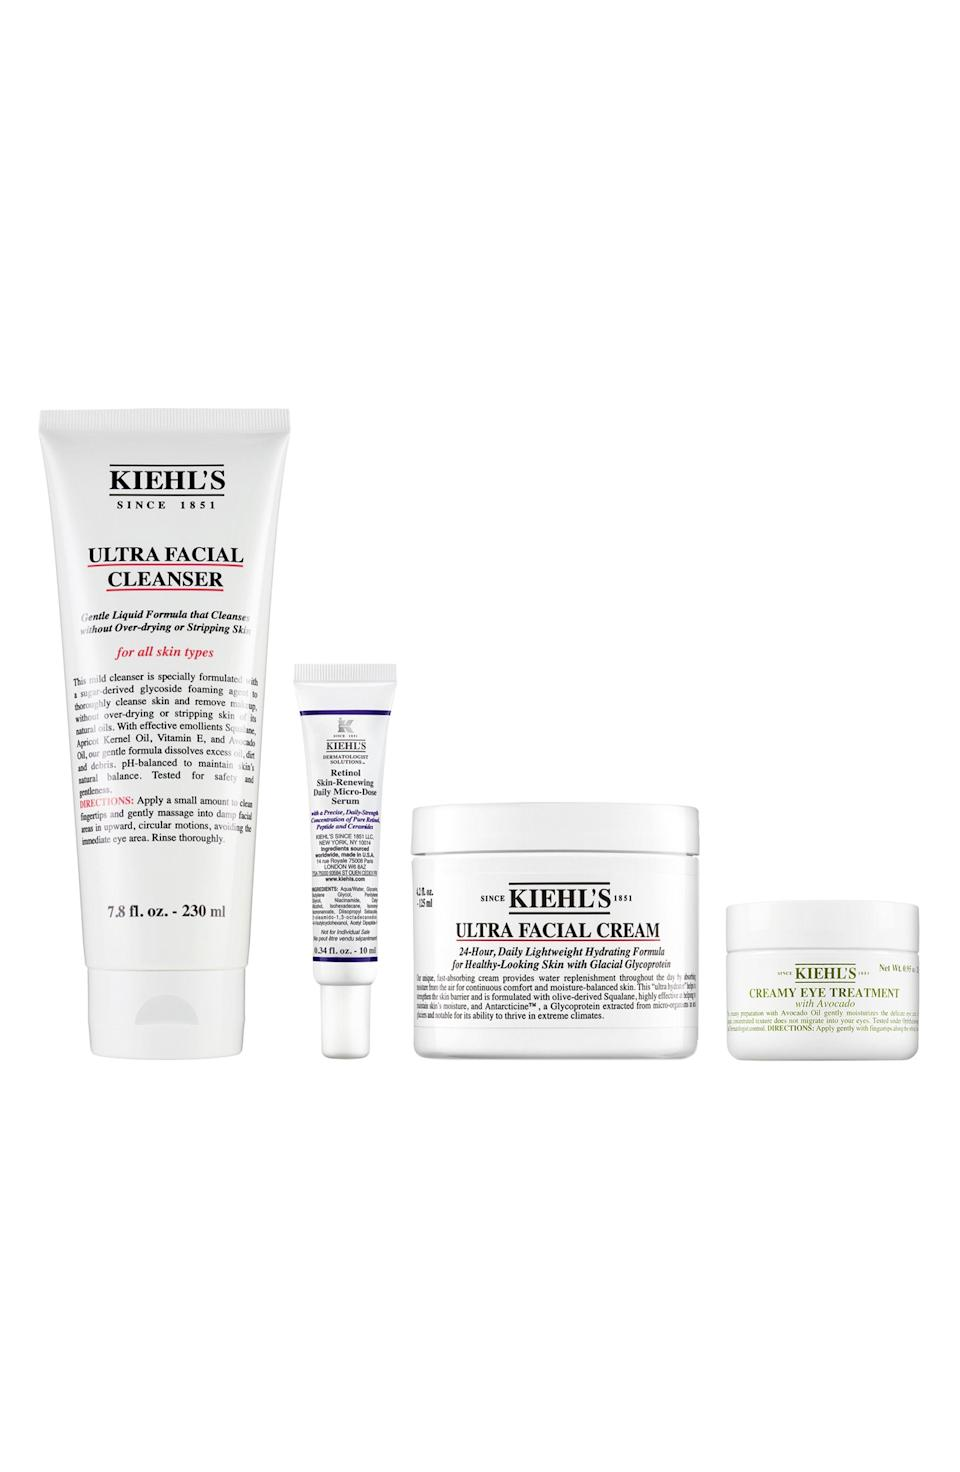 """<p><strong>Kiehl's Since 1851 </strong></p><p>nordstrom.com</p><p><a href=""""https://go.redirectingat.com?id=74968X1596630&url=https%3A%2F%2Fwww.nordstrom.com%2Fs%2Fkiehls-since-1851-ultra-facial-cleanser-set-156-value%2F5936282%3Forigin%3Dcategory-personalizedsort%26breadcrumb%3DHome%252FAnniversary%2BSale%252FBeauty%2BExclusives%252FSkin%2BCare%26color%3D000&sref=https%3A%2F%2Fwww.harpersbazaar.com%2Fbeauty%2Fg36991550%2Fnordstrom-anniversary-sale-beauty-deals%2F"""" rel=""""nofollow noopener"""" target=""""_blank"""" data-ylk=""""slk:Shop Now"""" class=""""link rapid-noclick-resp"""">Shop Now</a></p><p><strong>Sale: $88</strong></p><p><strong>Value: $156</strong></p><p>This set of Kiehl's skincare favorites includes the brand's gentle, combination skin-friendly Ultra Facial Cleanser (a <a href=""""https://www.harpersbazaar.com/beauty/skin-care/a26412880/anti-aging-awards/"""" rel=""""nofollow noopener"""" target=""""_blank"""" data-ylk=""""slk:BAZAAR 2021 Anti-Aging Award winner"""" class=""""link rapid-noclick-resp"""">BAZAAR 2021 Anti-Aging Award winner</a>), a moisturizing facial cream, a nourishing creamy eye treatment and a travel size version of the brand's new Retinol serum. </p>"""